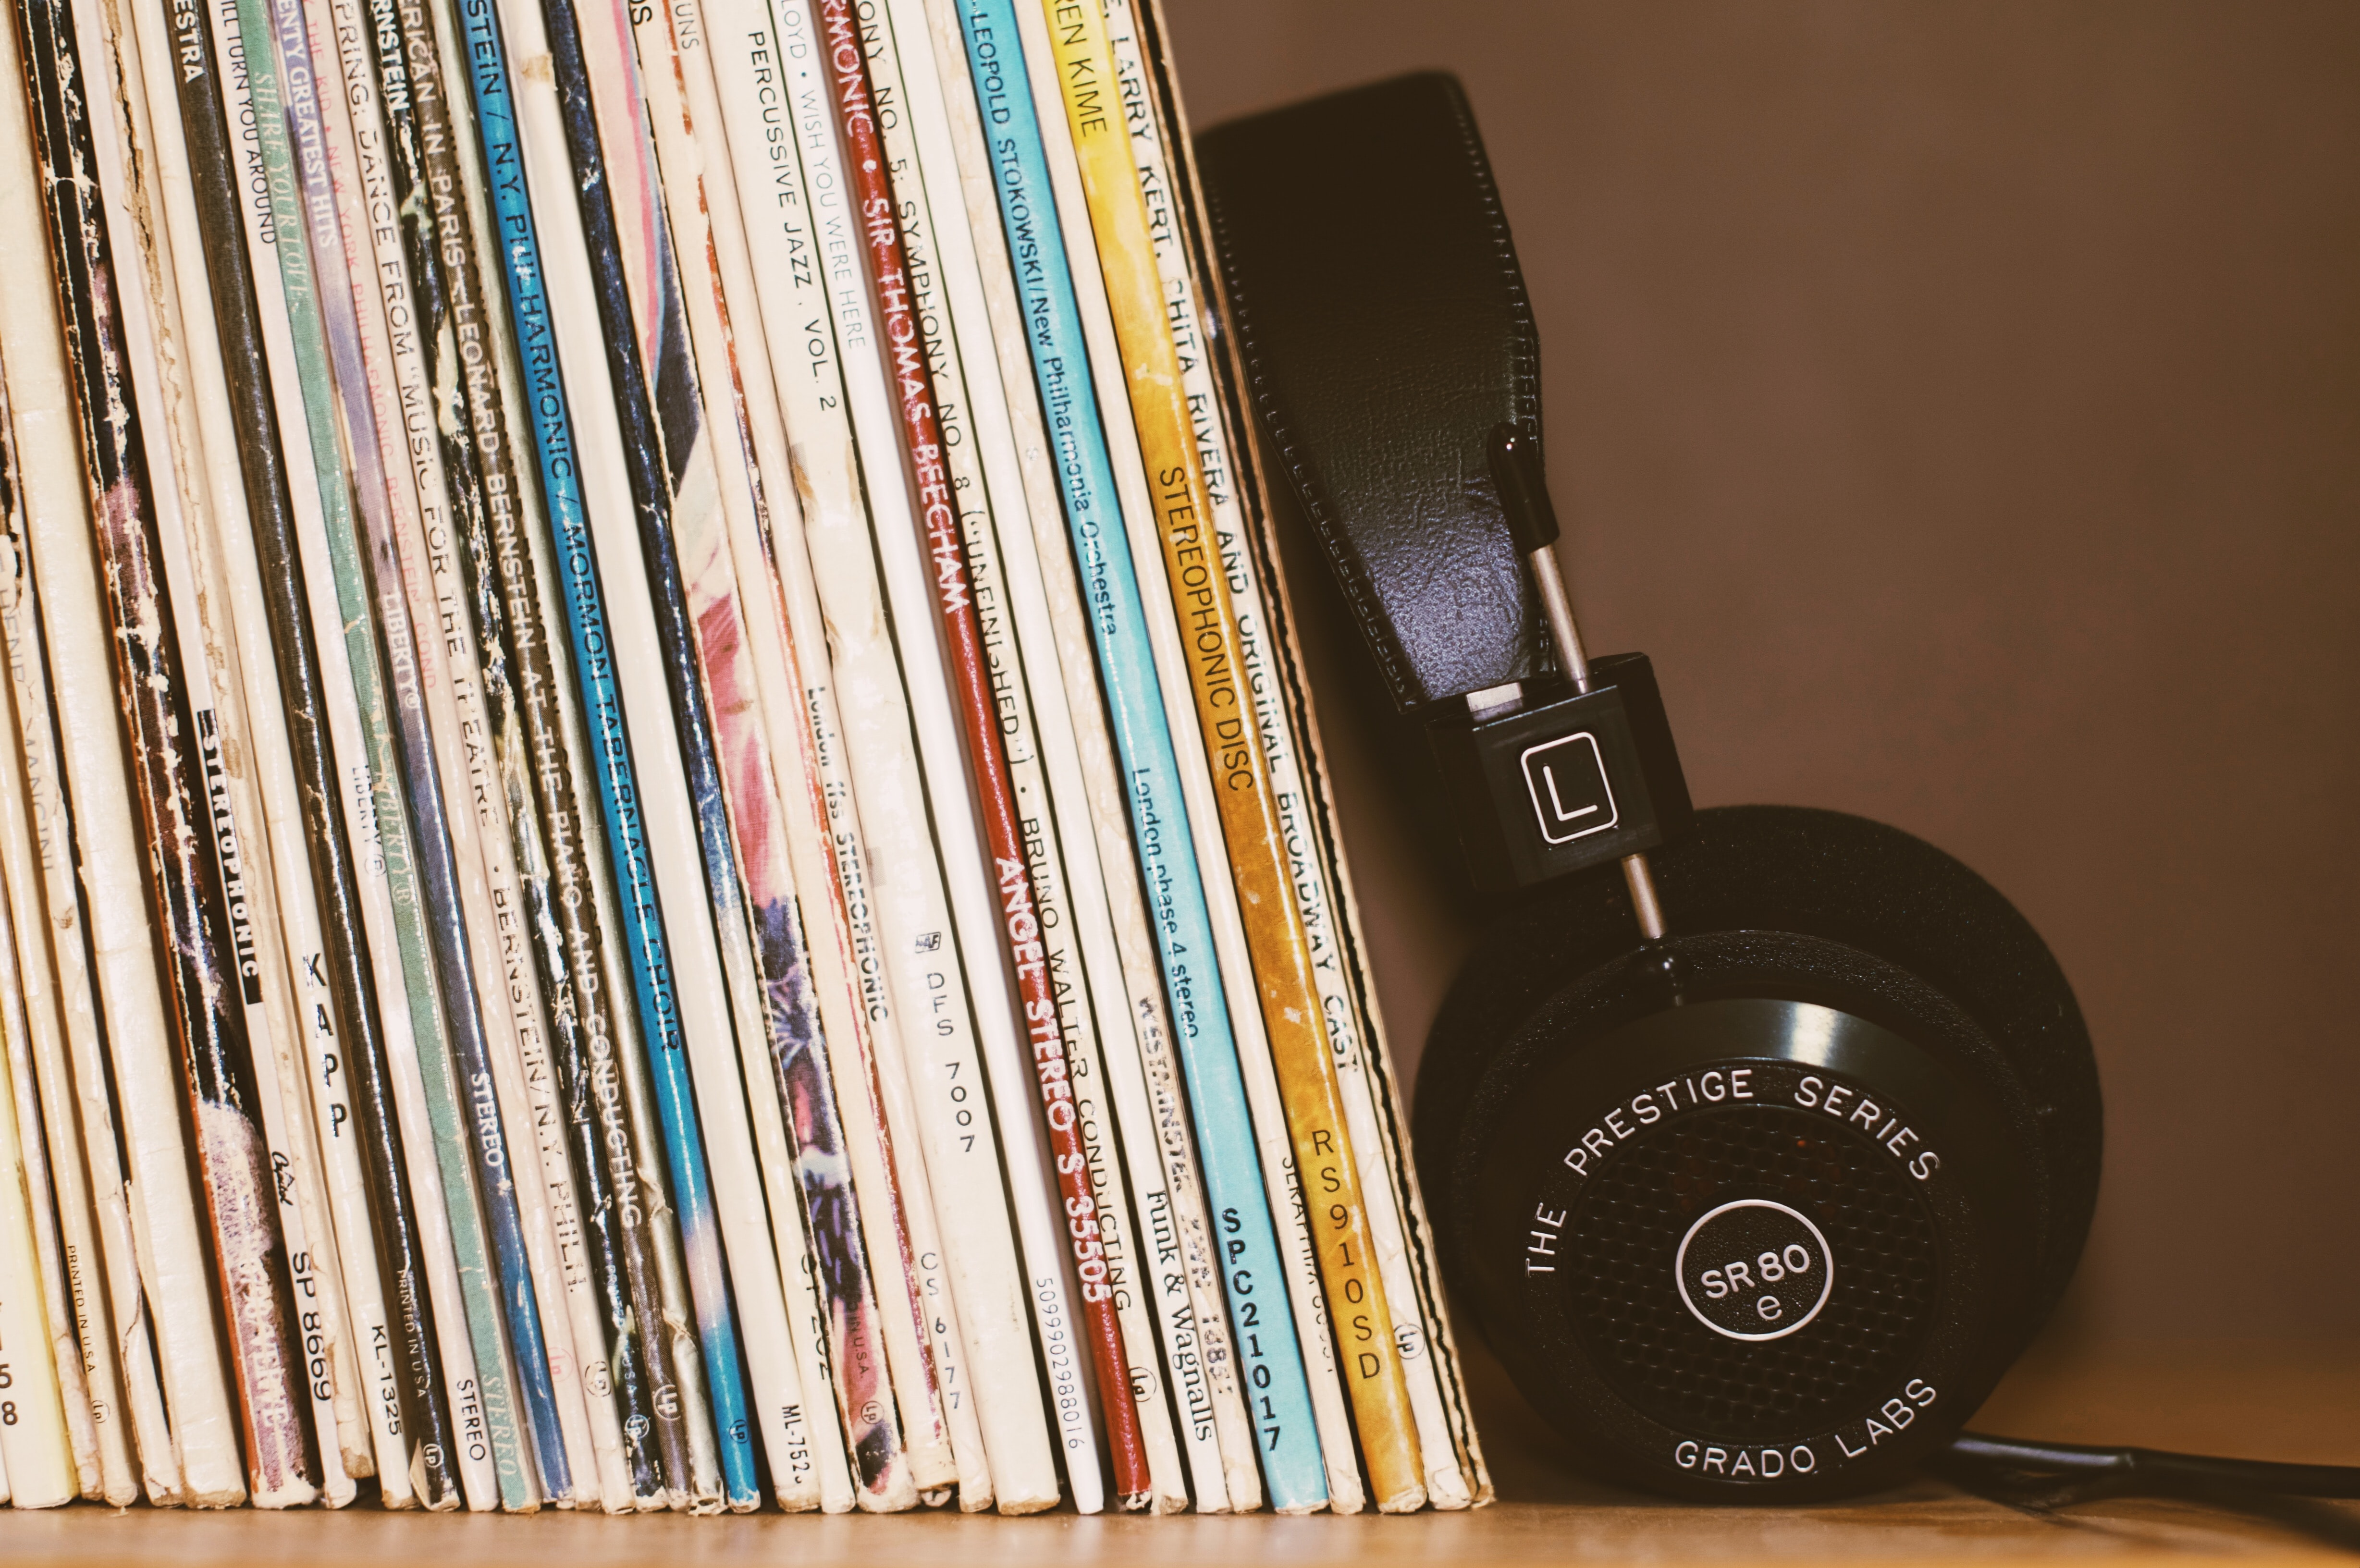 Black headphones leaning against a collection of vinyl records on a shelf